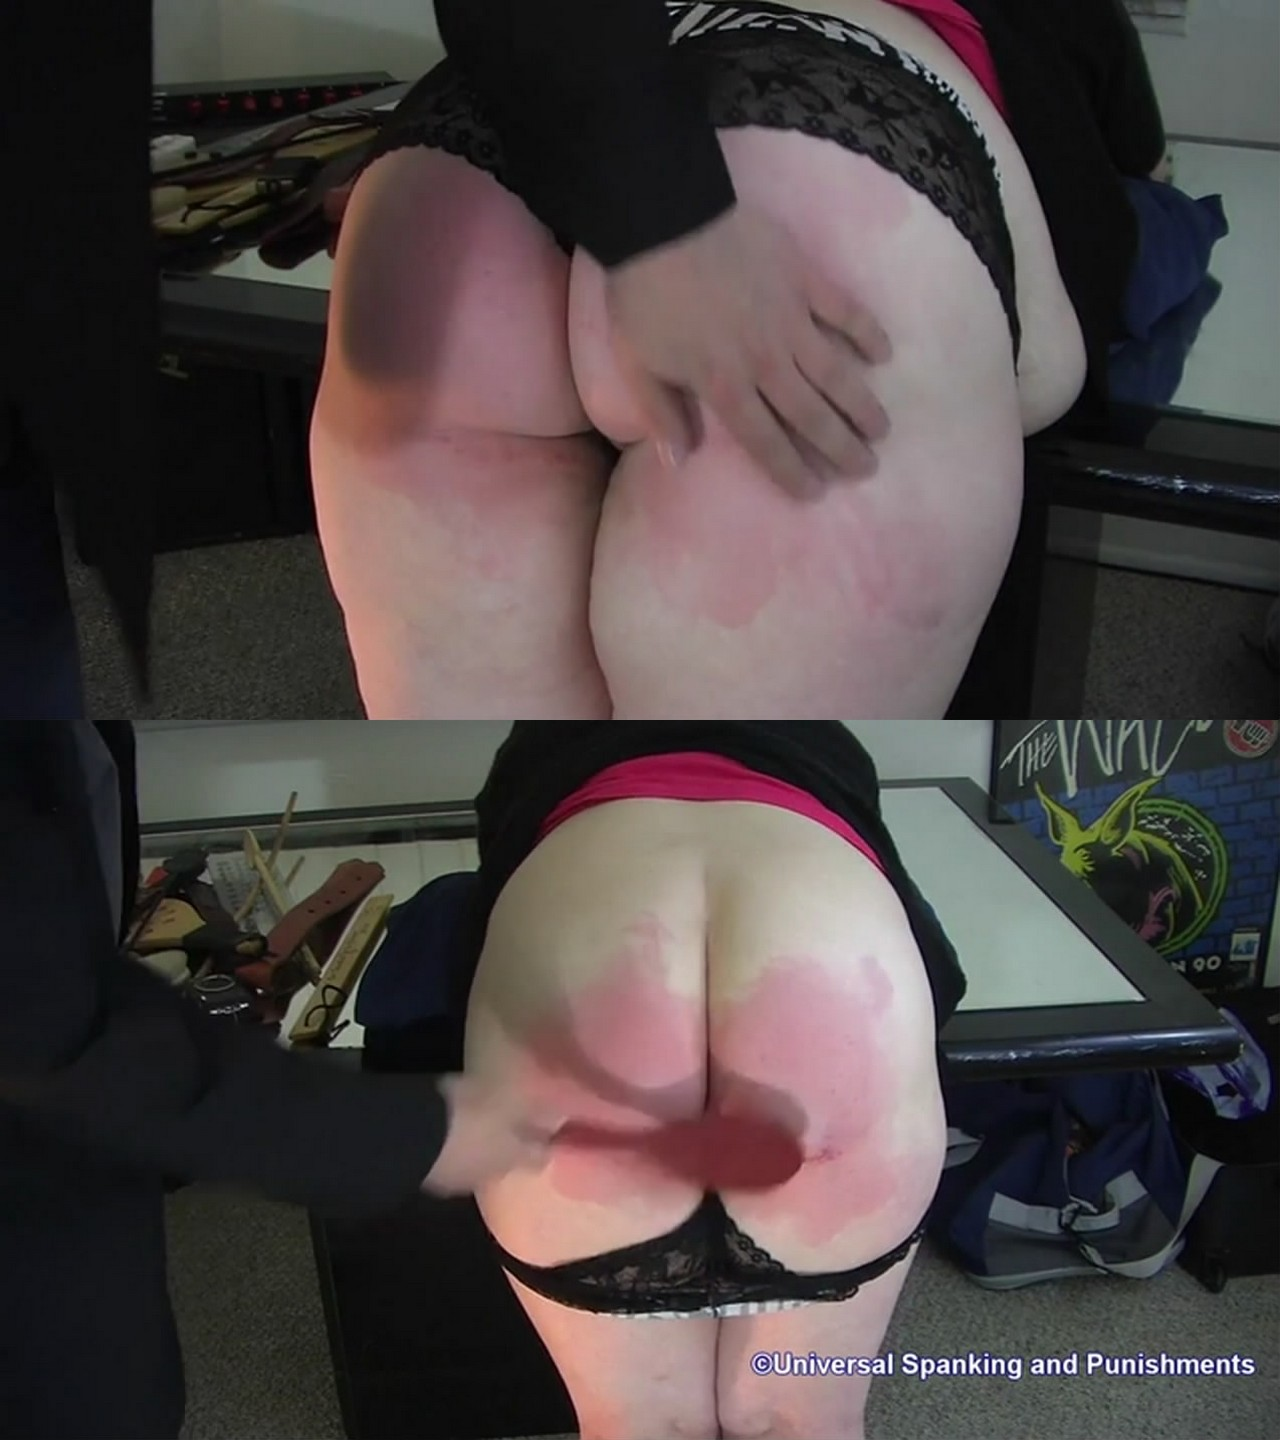 Universal Spanking and Punishments – MP4/HD – Hard Licks in the Puishment Room #3